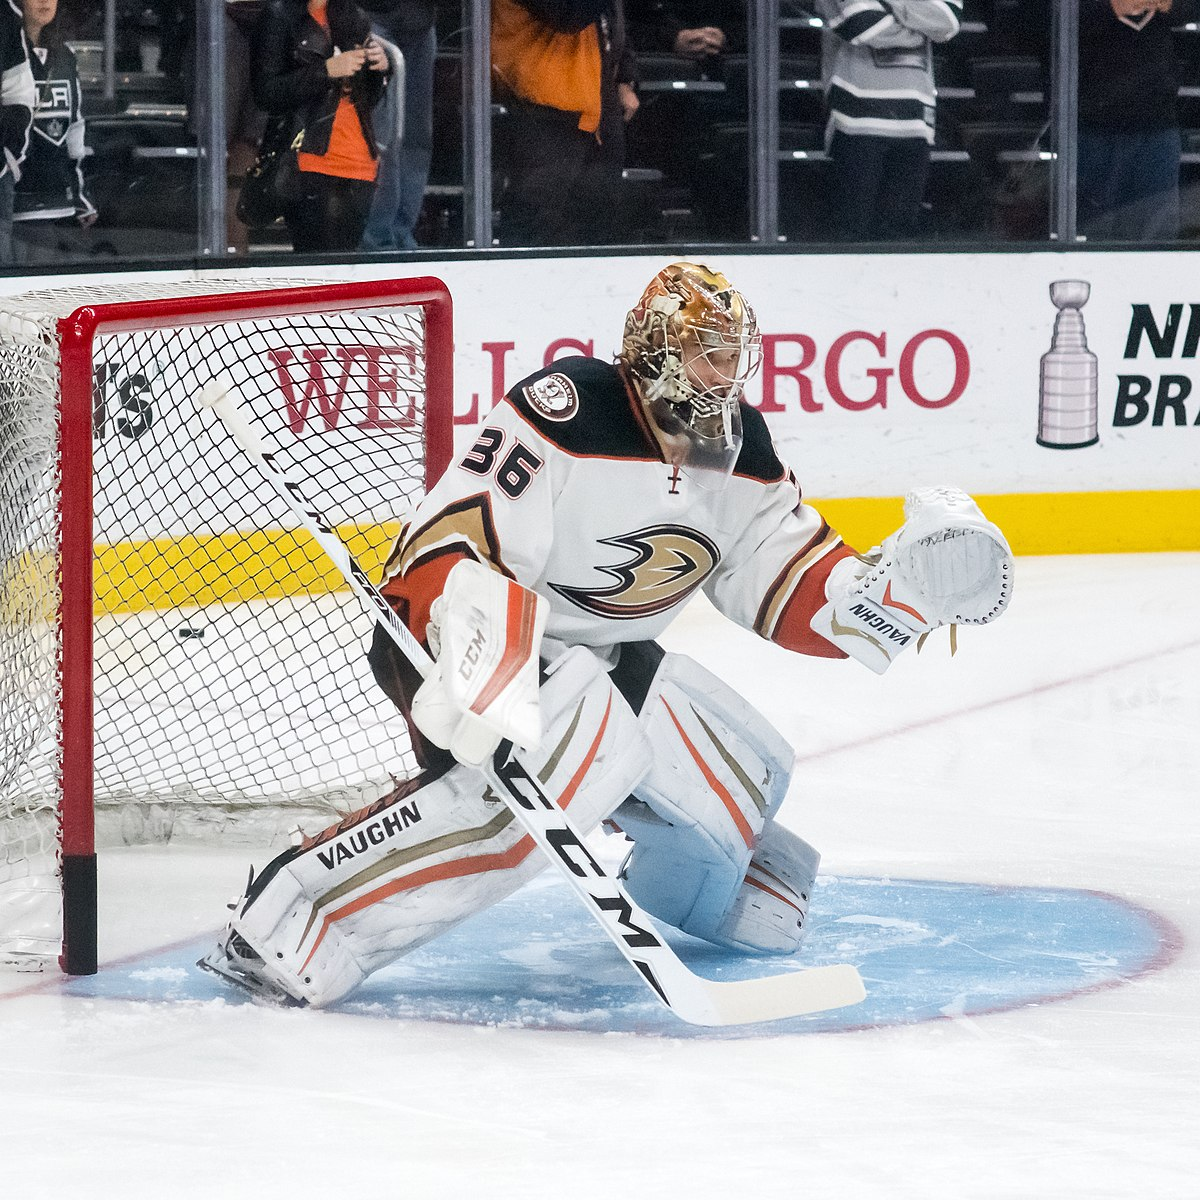 NHL Predictions on Where the Anaheim Ducks Will Finish the 2021 Season